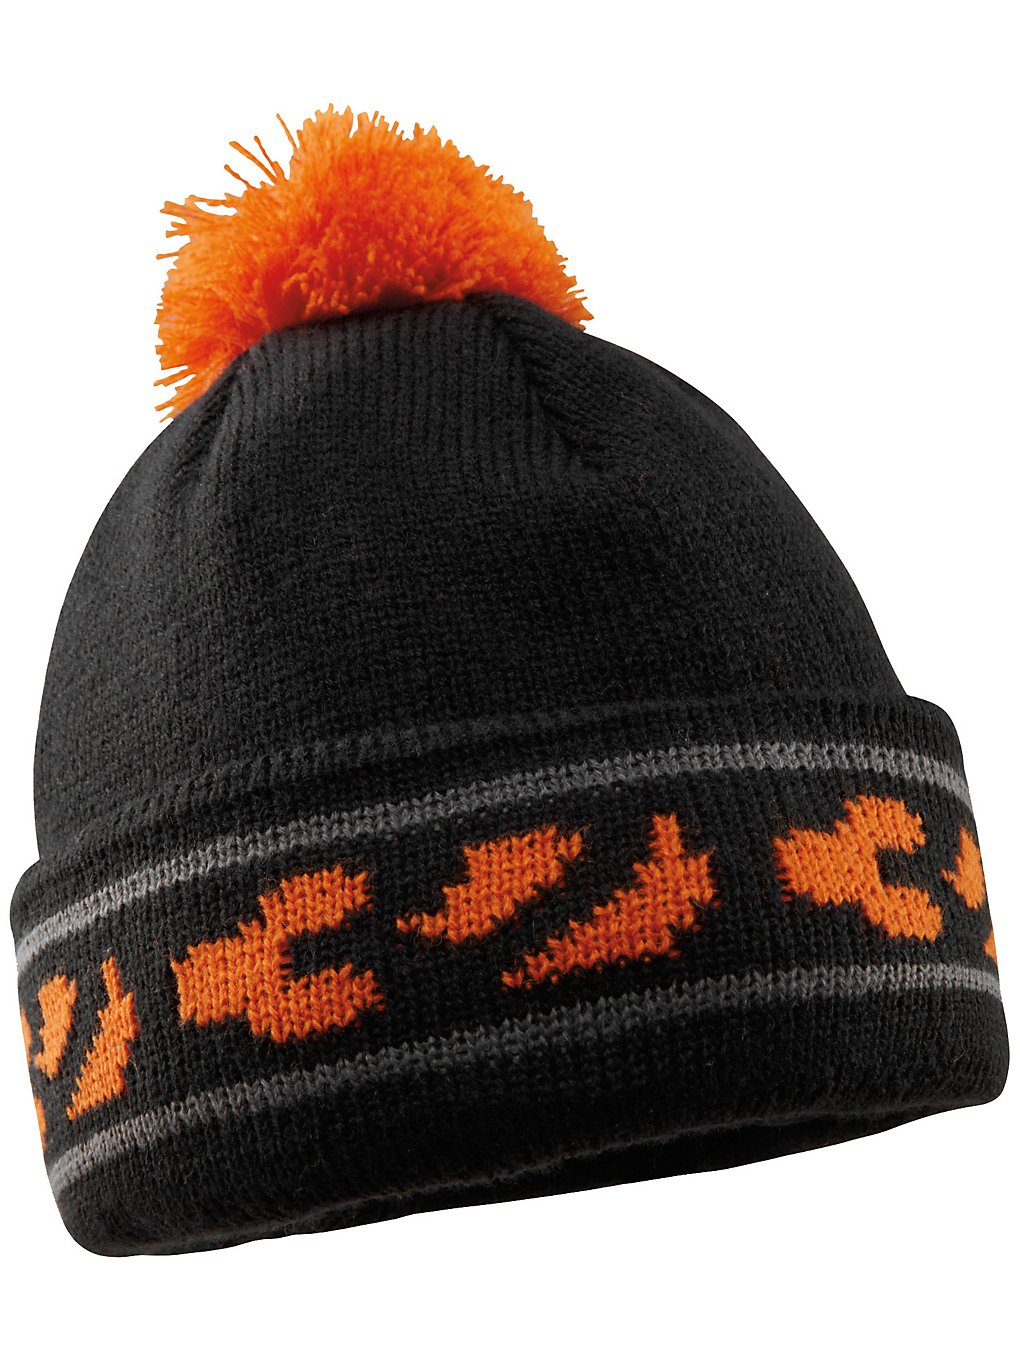 Image of 32 Factory Beanie